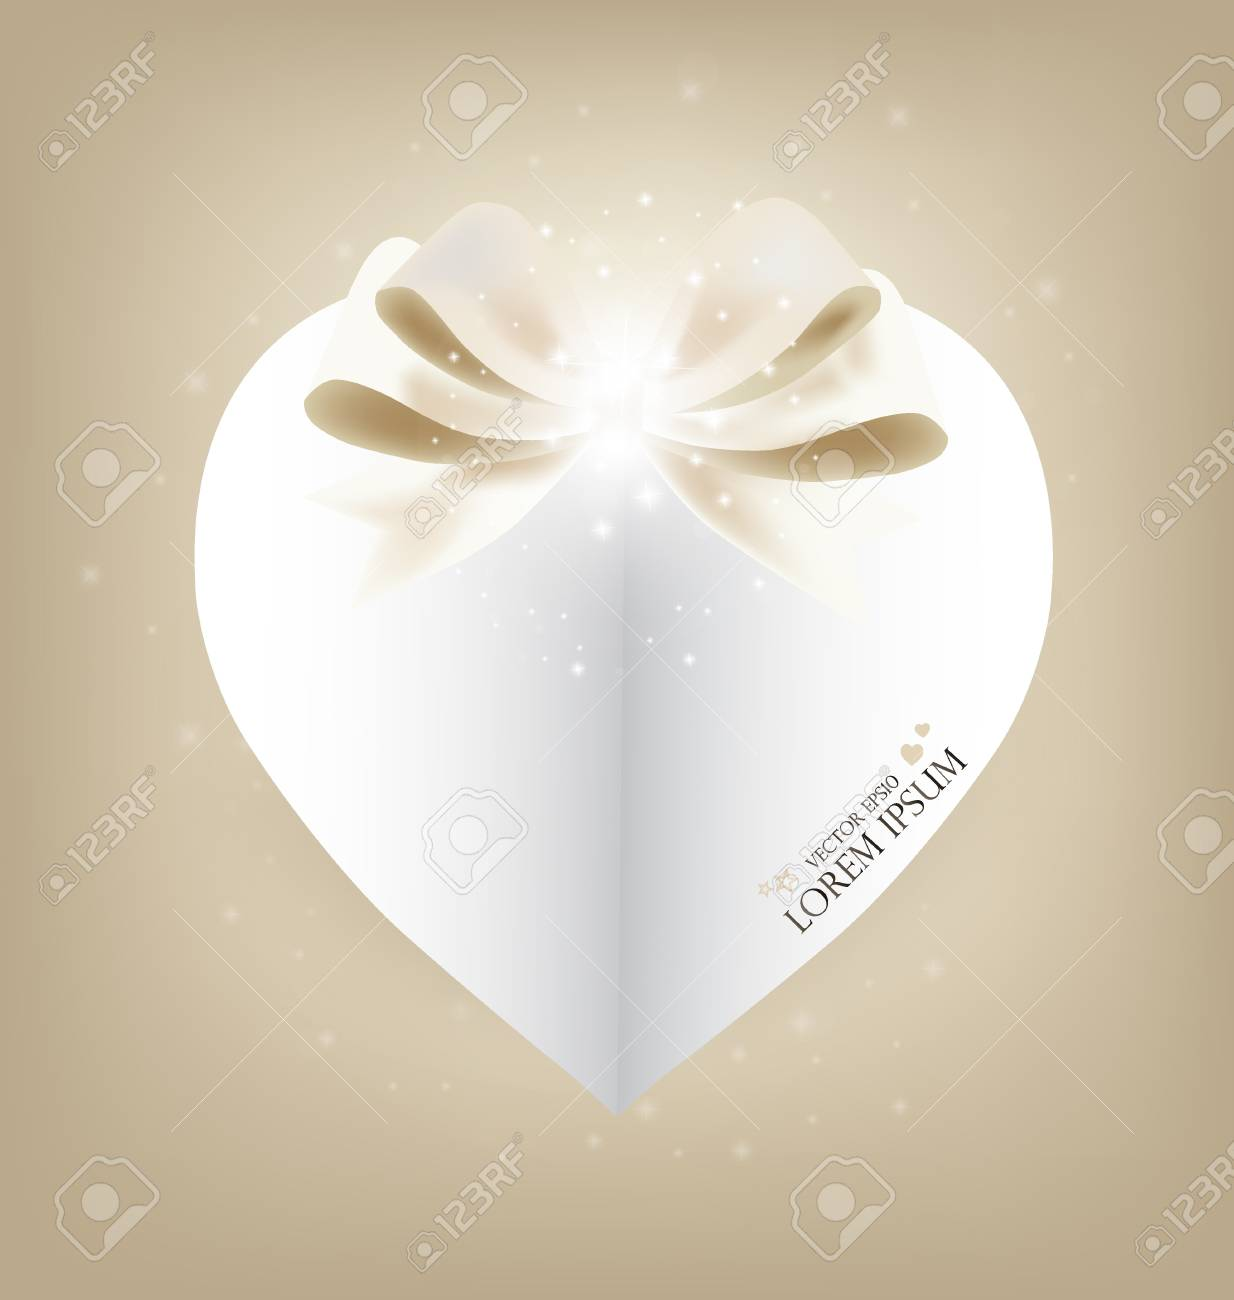 Valentine's day card with Heart Paper. Vector illustration. Stock Vector - 17350565